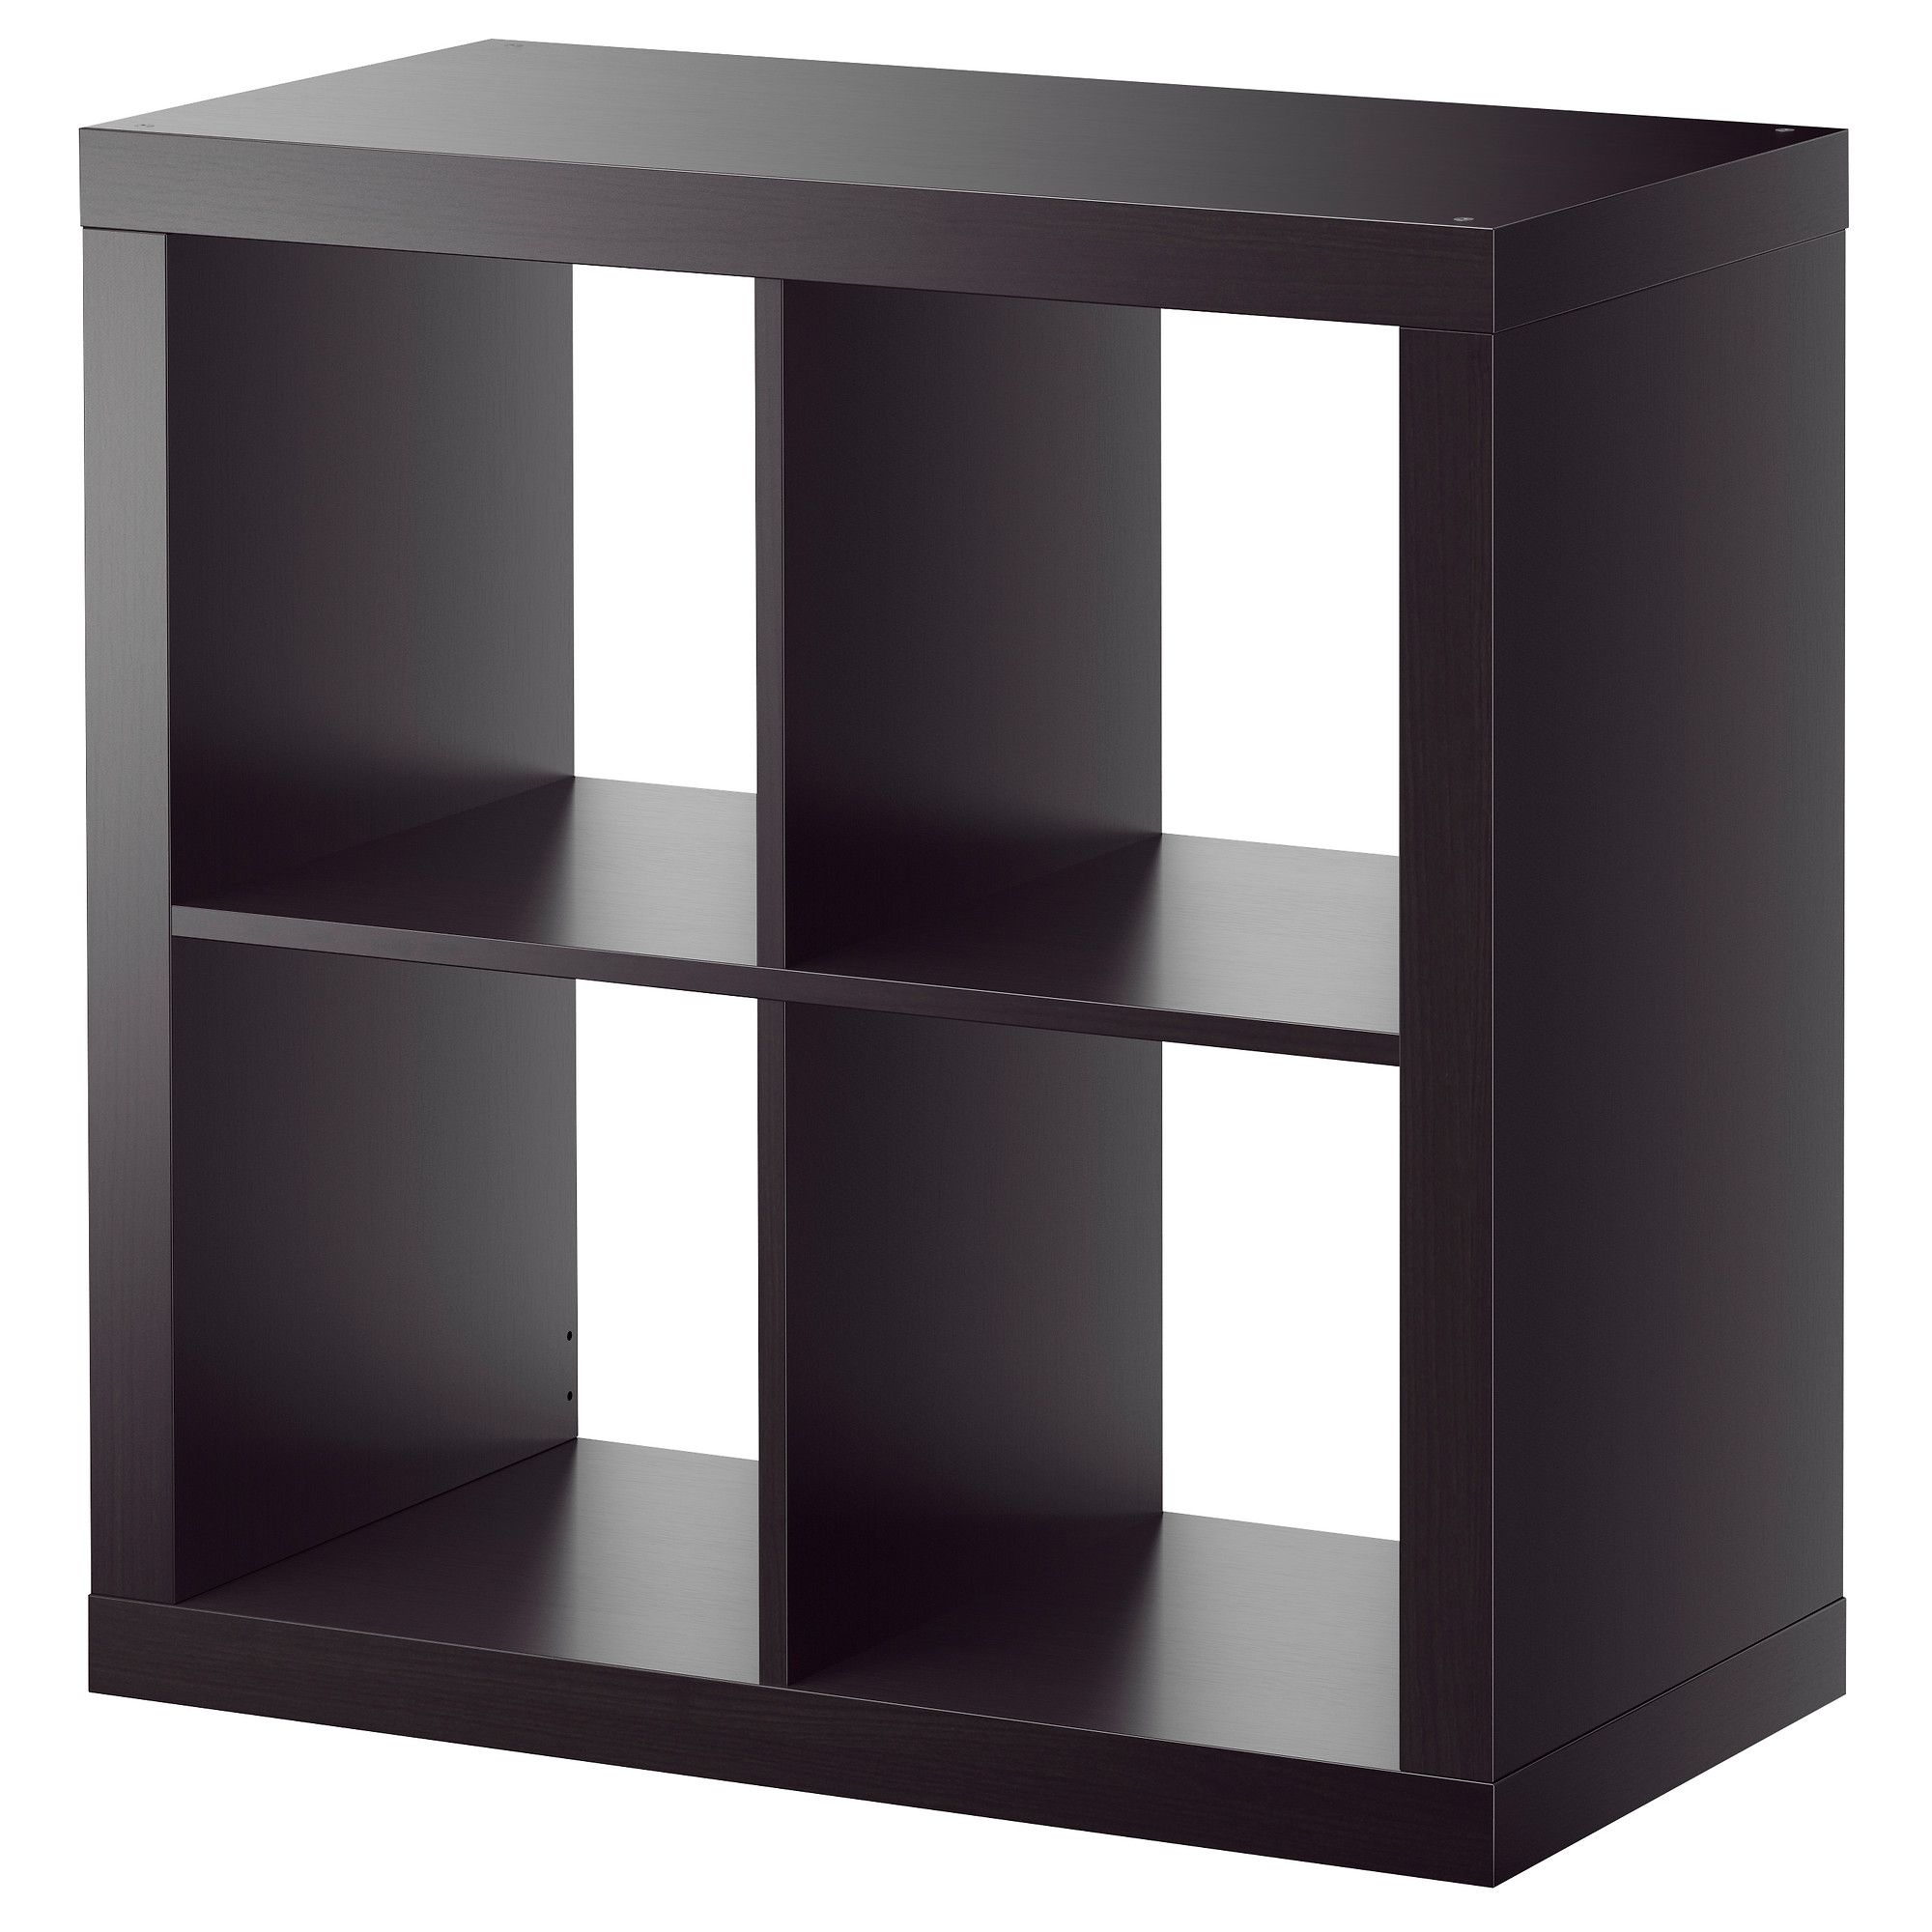 Ikea regal expedit for Mueble cuadrados ikea